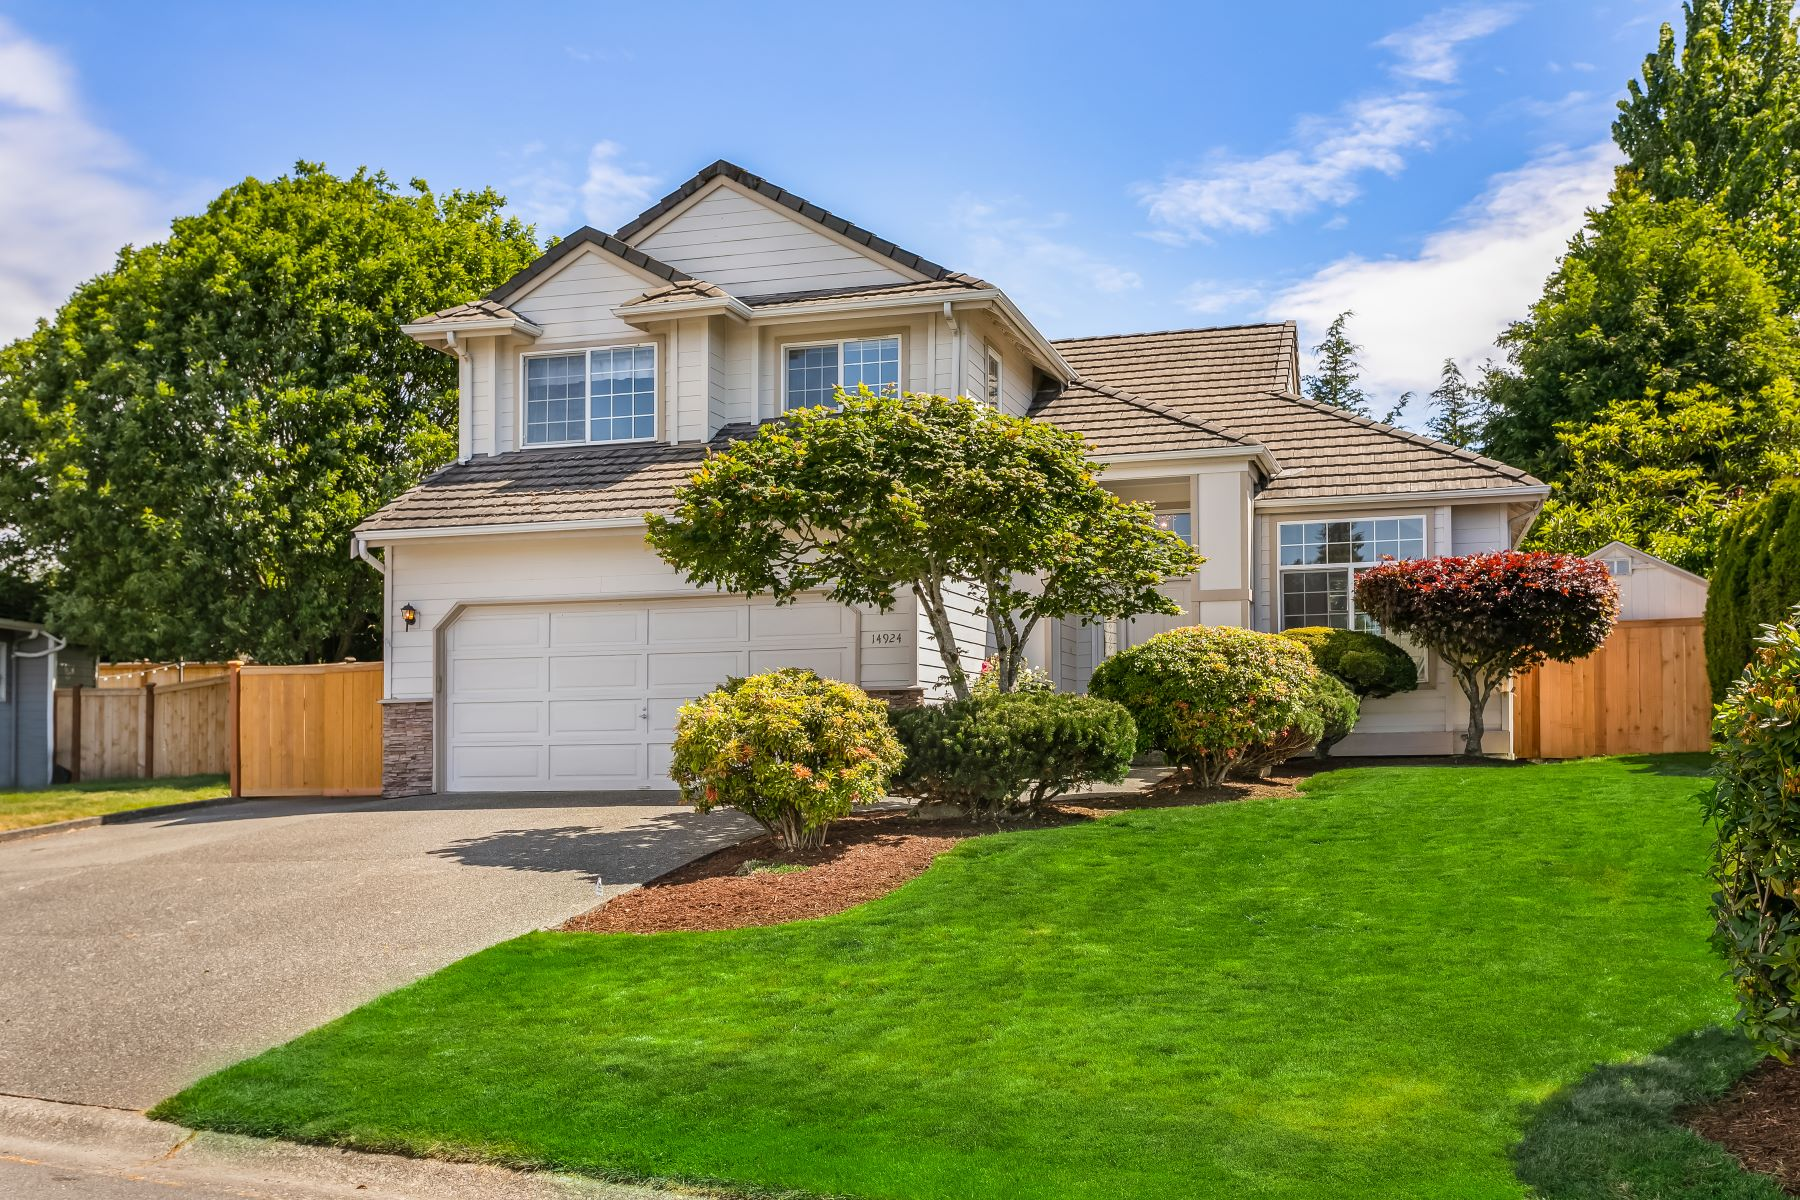 Single Family Homes for Sale at 14924 89th Place NE, Kenmore, WA 98028 14924 89th Place NE Kenmore, Washington 98028 United States